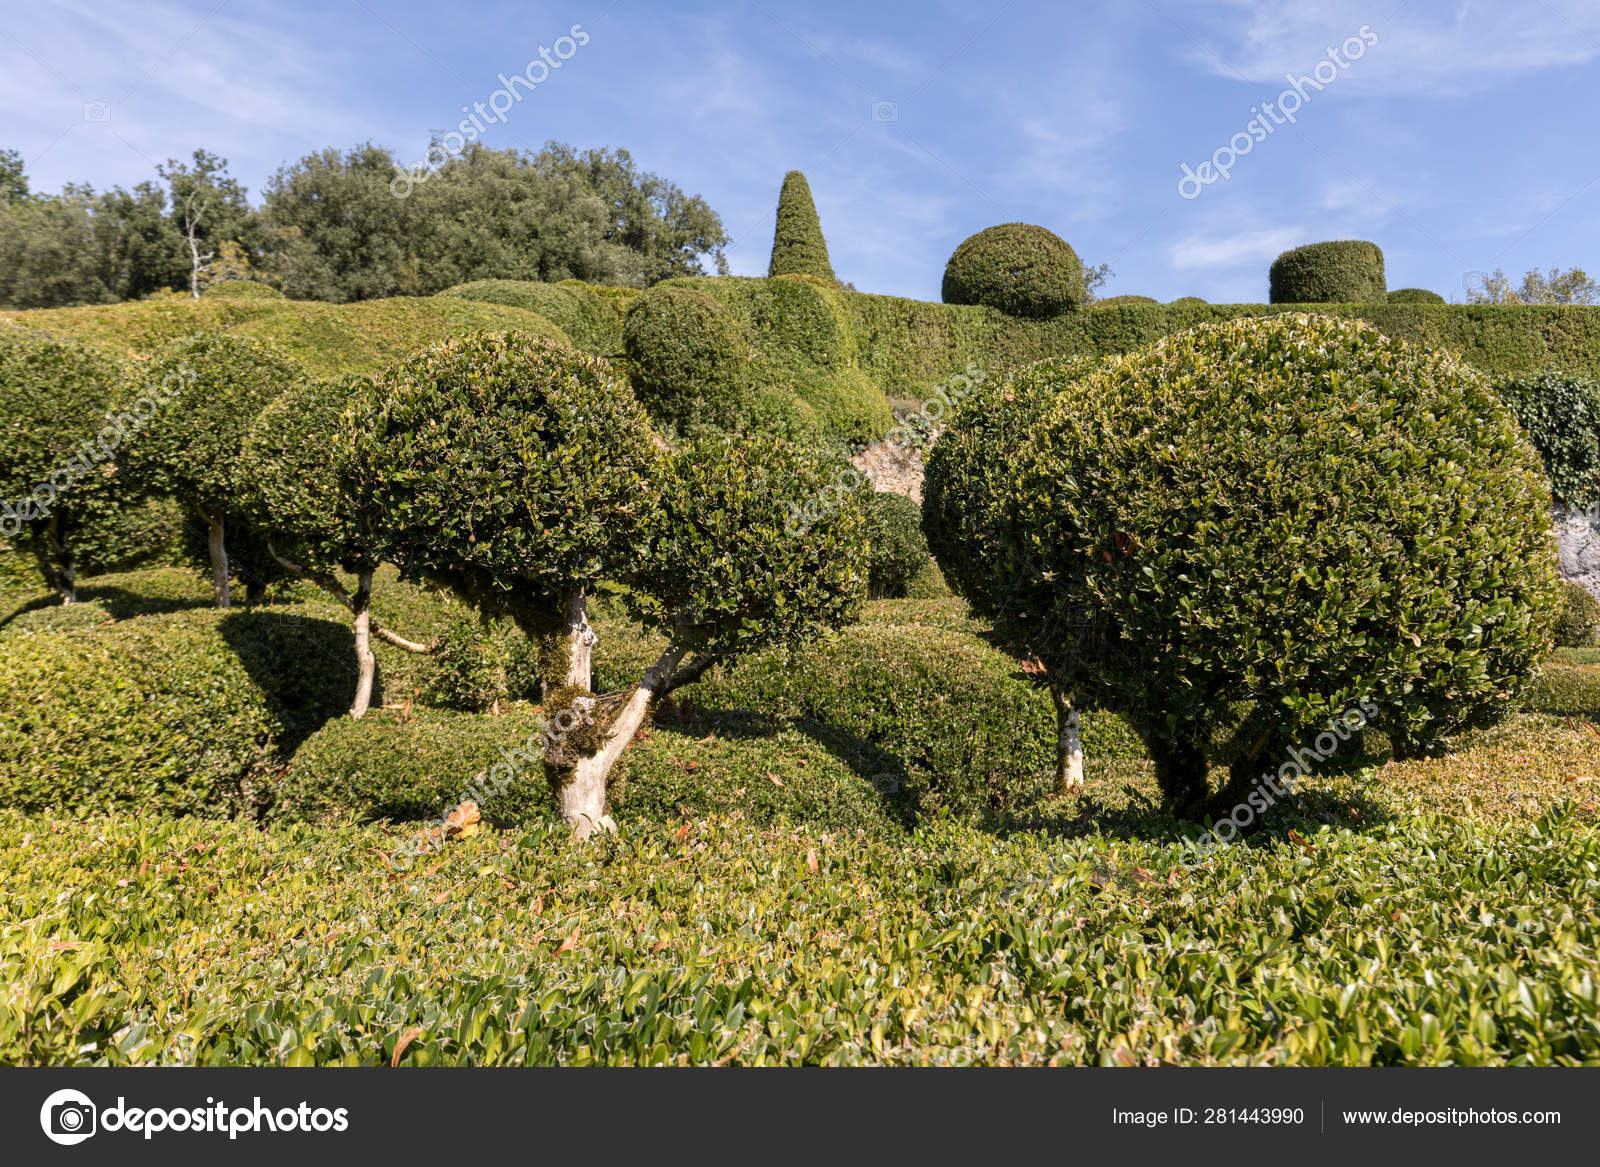 Dordogne France September 2018 Topiary Gardens Jardins dedans Region De France 2018